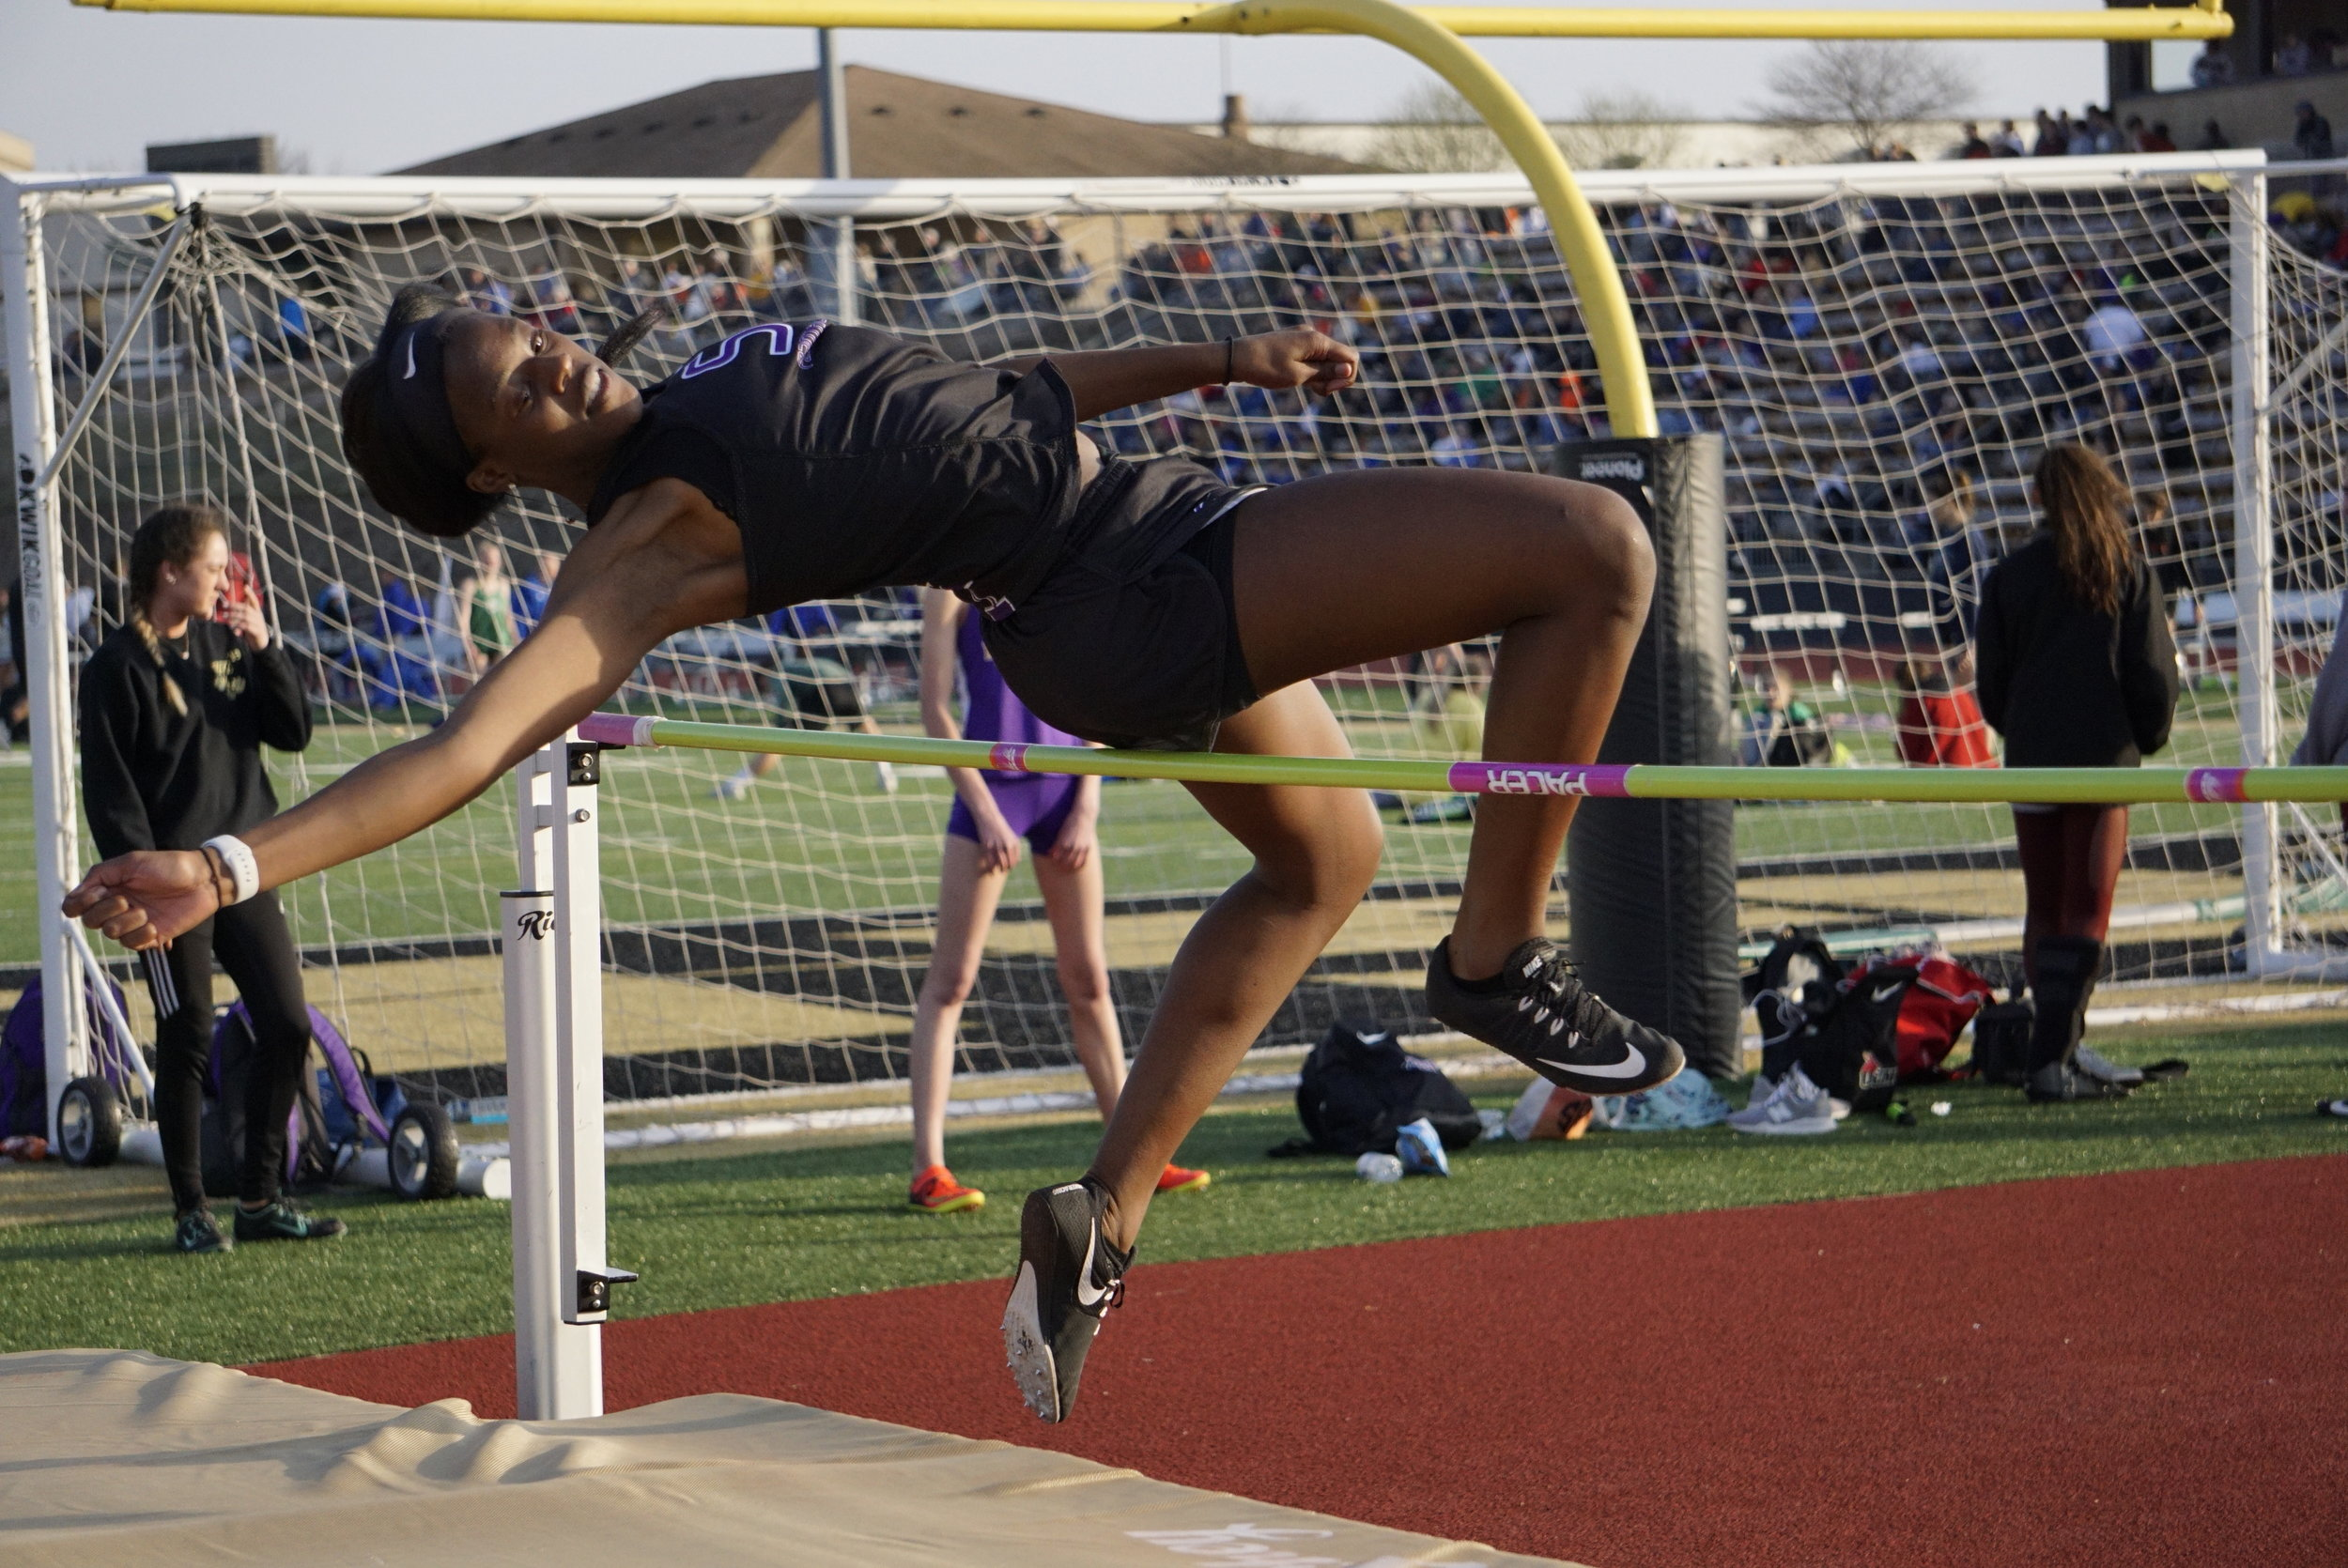 DEREK BRIZEDINE/Kearney Courier-Tribune  Park Hill South's Alecia Westbrook won the high jump competition with a leap of 5 feet, 2 inches during the Kearney Invitational held on Friday, April 5 at Excelsior Springs High School due to construction at Kearney High School.